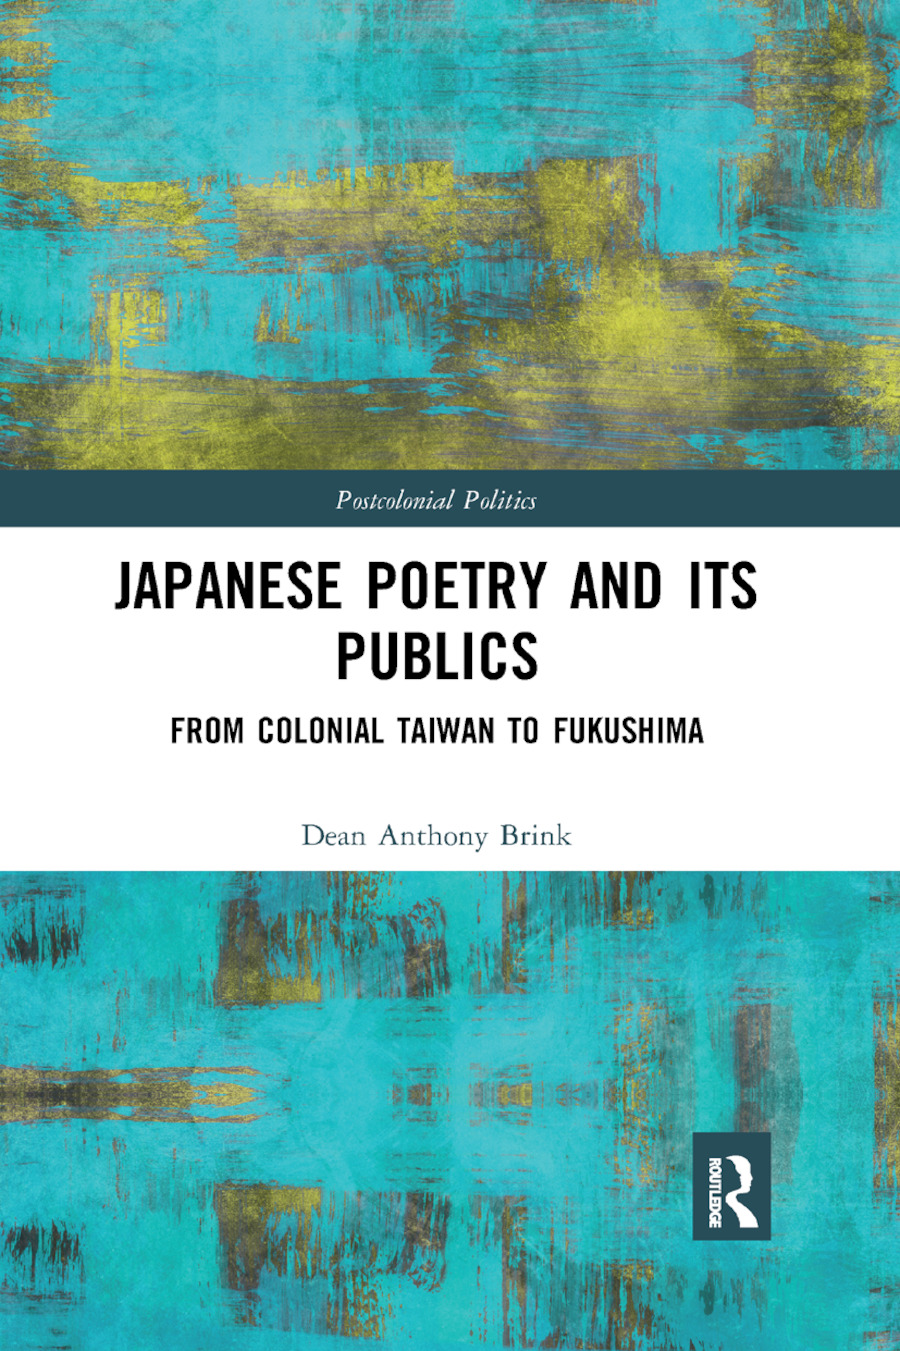 Japanese Poetry and its Publics: From Colonial Taiwan to Fukushima book cover